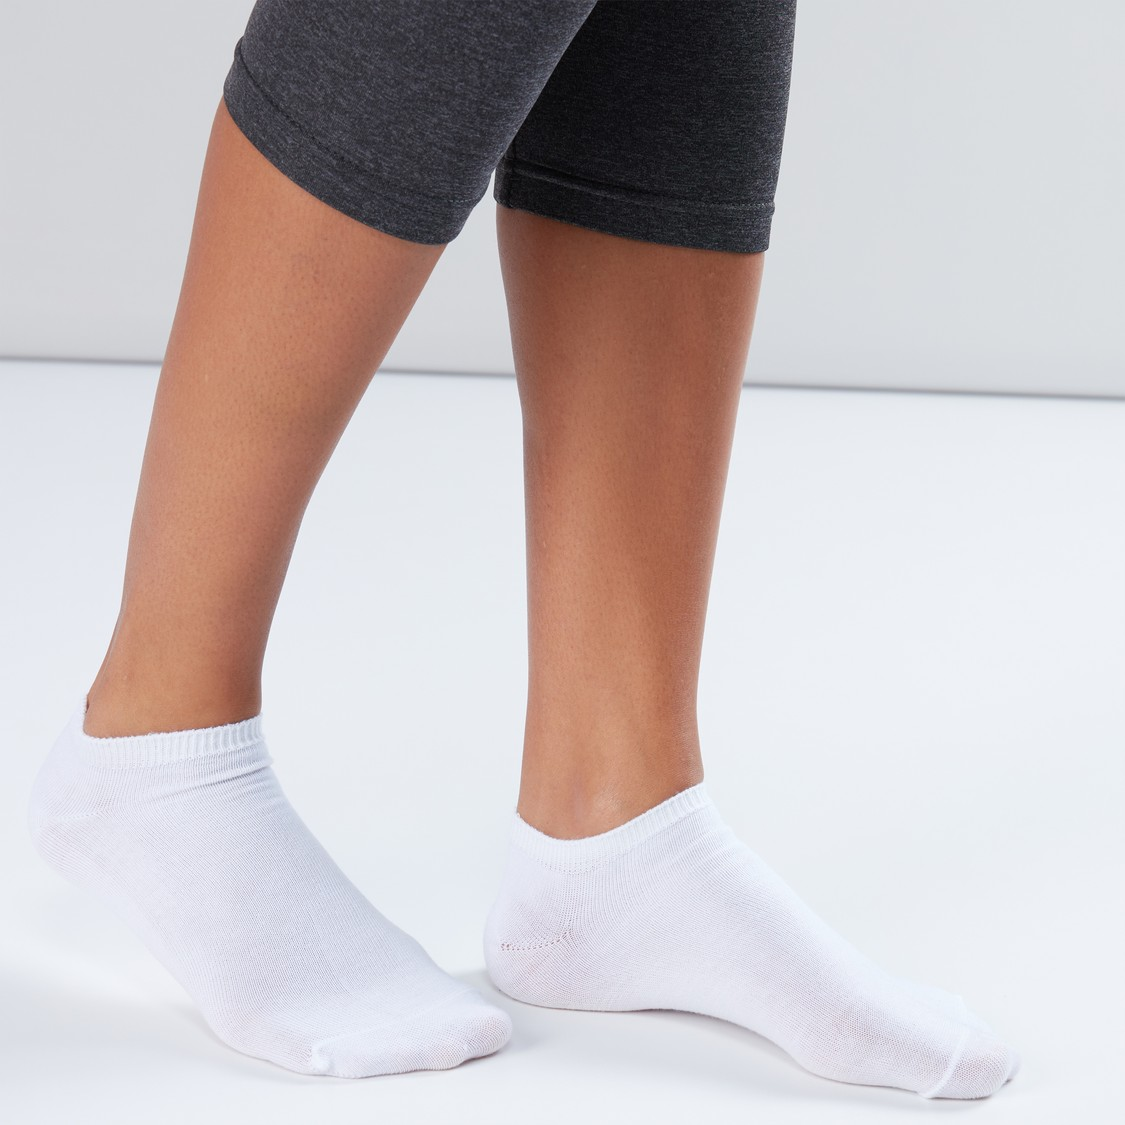 Textured Ankle Length Socks - Set of 10